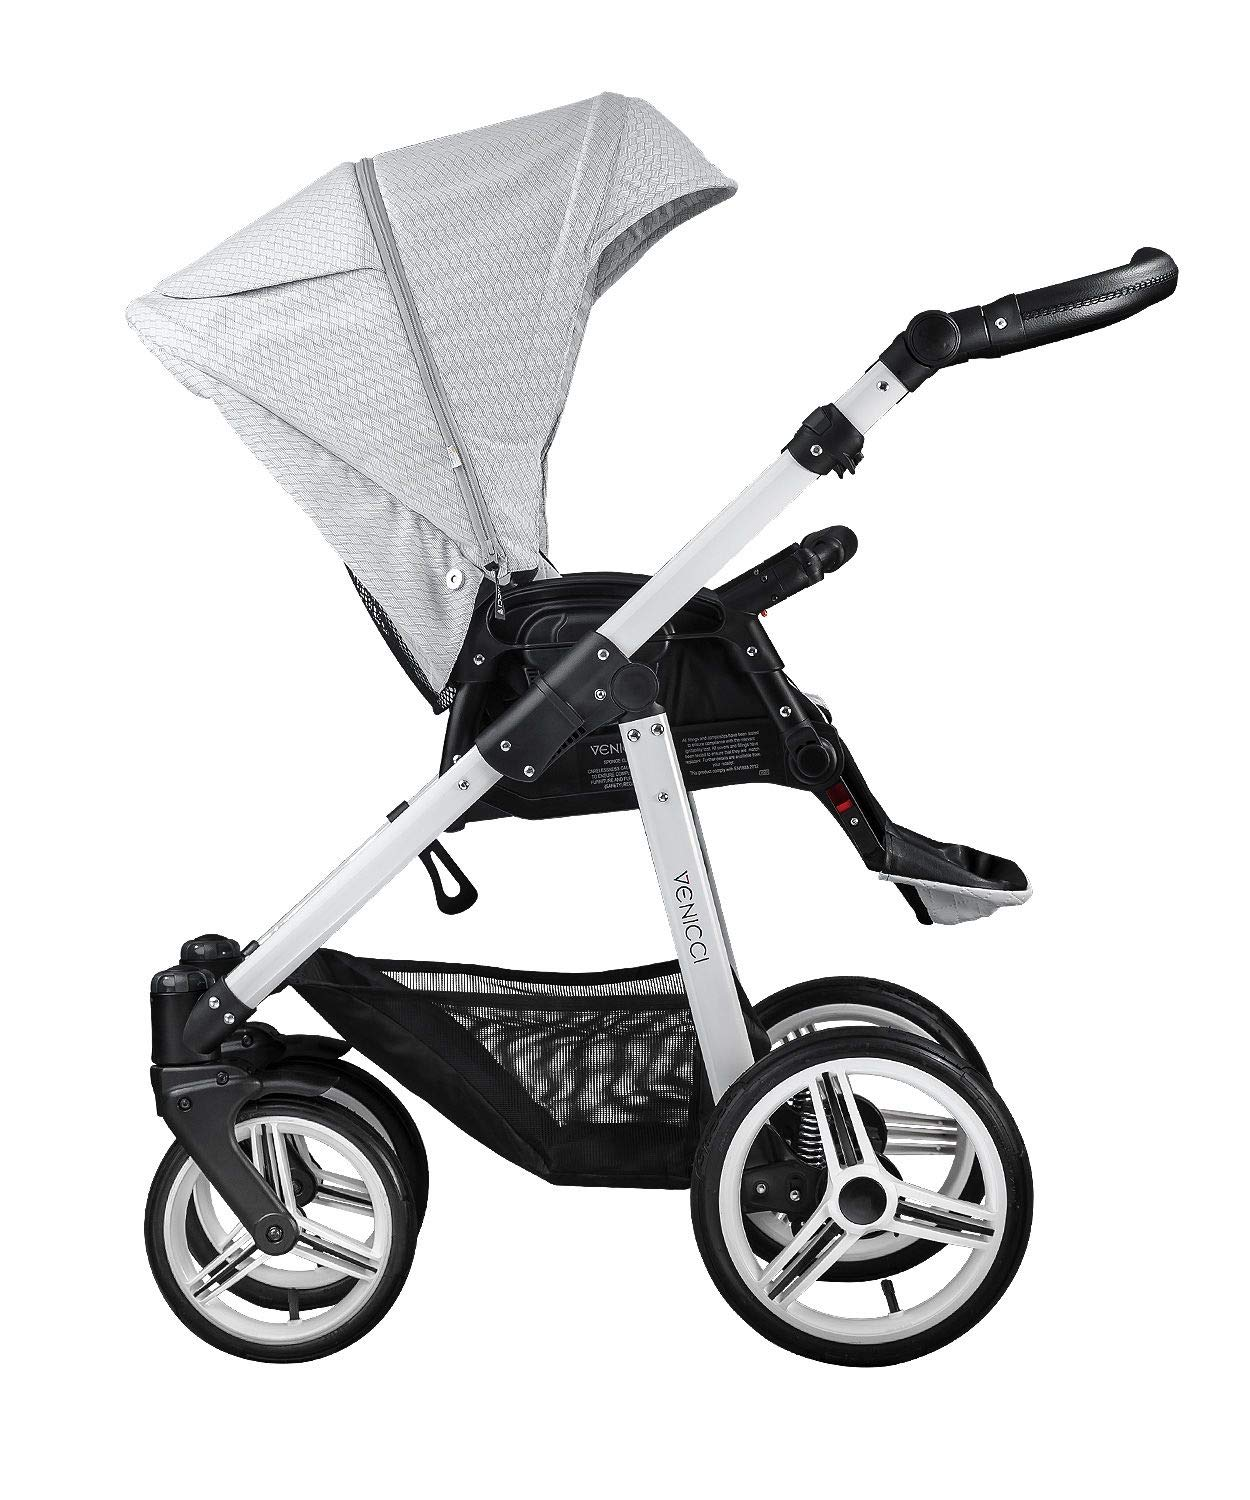 Venicci Pure 3-in-1 Travel System - Stone Grey - with Carrycot + Car Seat + Changing Bag + Apron + Raincover + Mosquito Net + 5-Point Harness and UV 50+ Fabric + Car Seat Adapters + Cup Holder  3 in 1 Travel System with included Group 0+ Car Seat Suitable for your baby from birth until 36 months 5-point harness to enhance the safety of your child 3